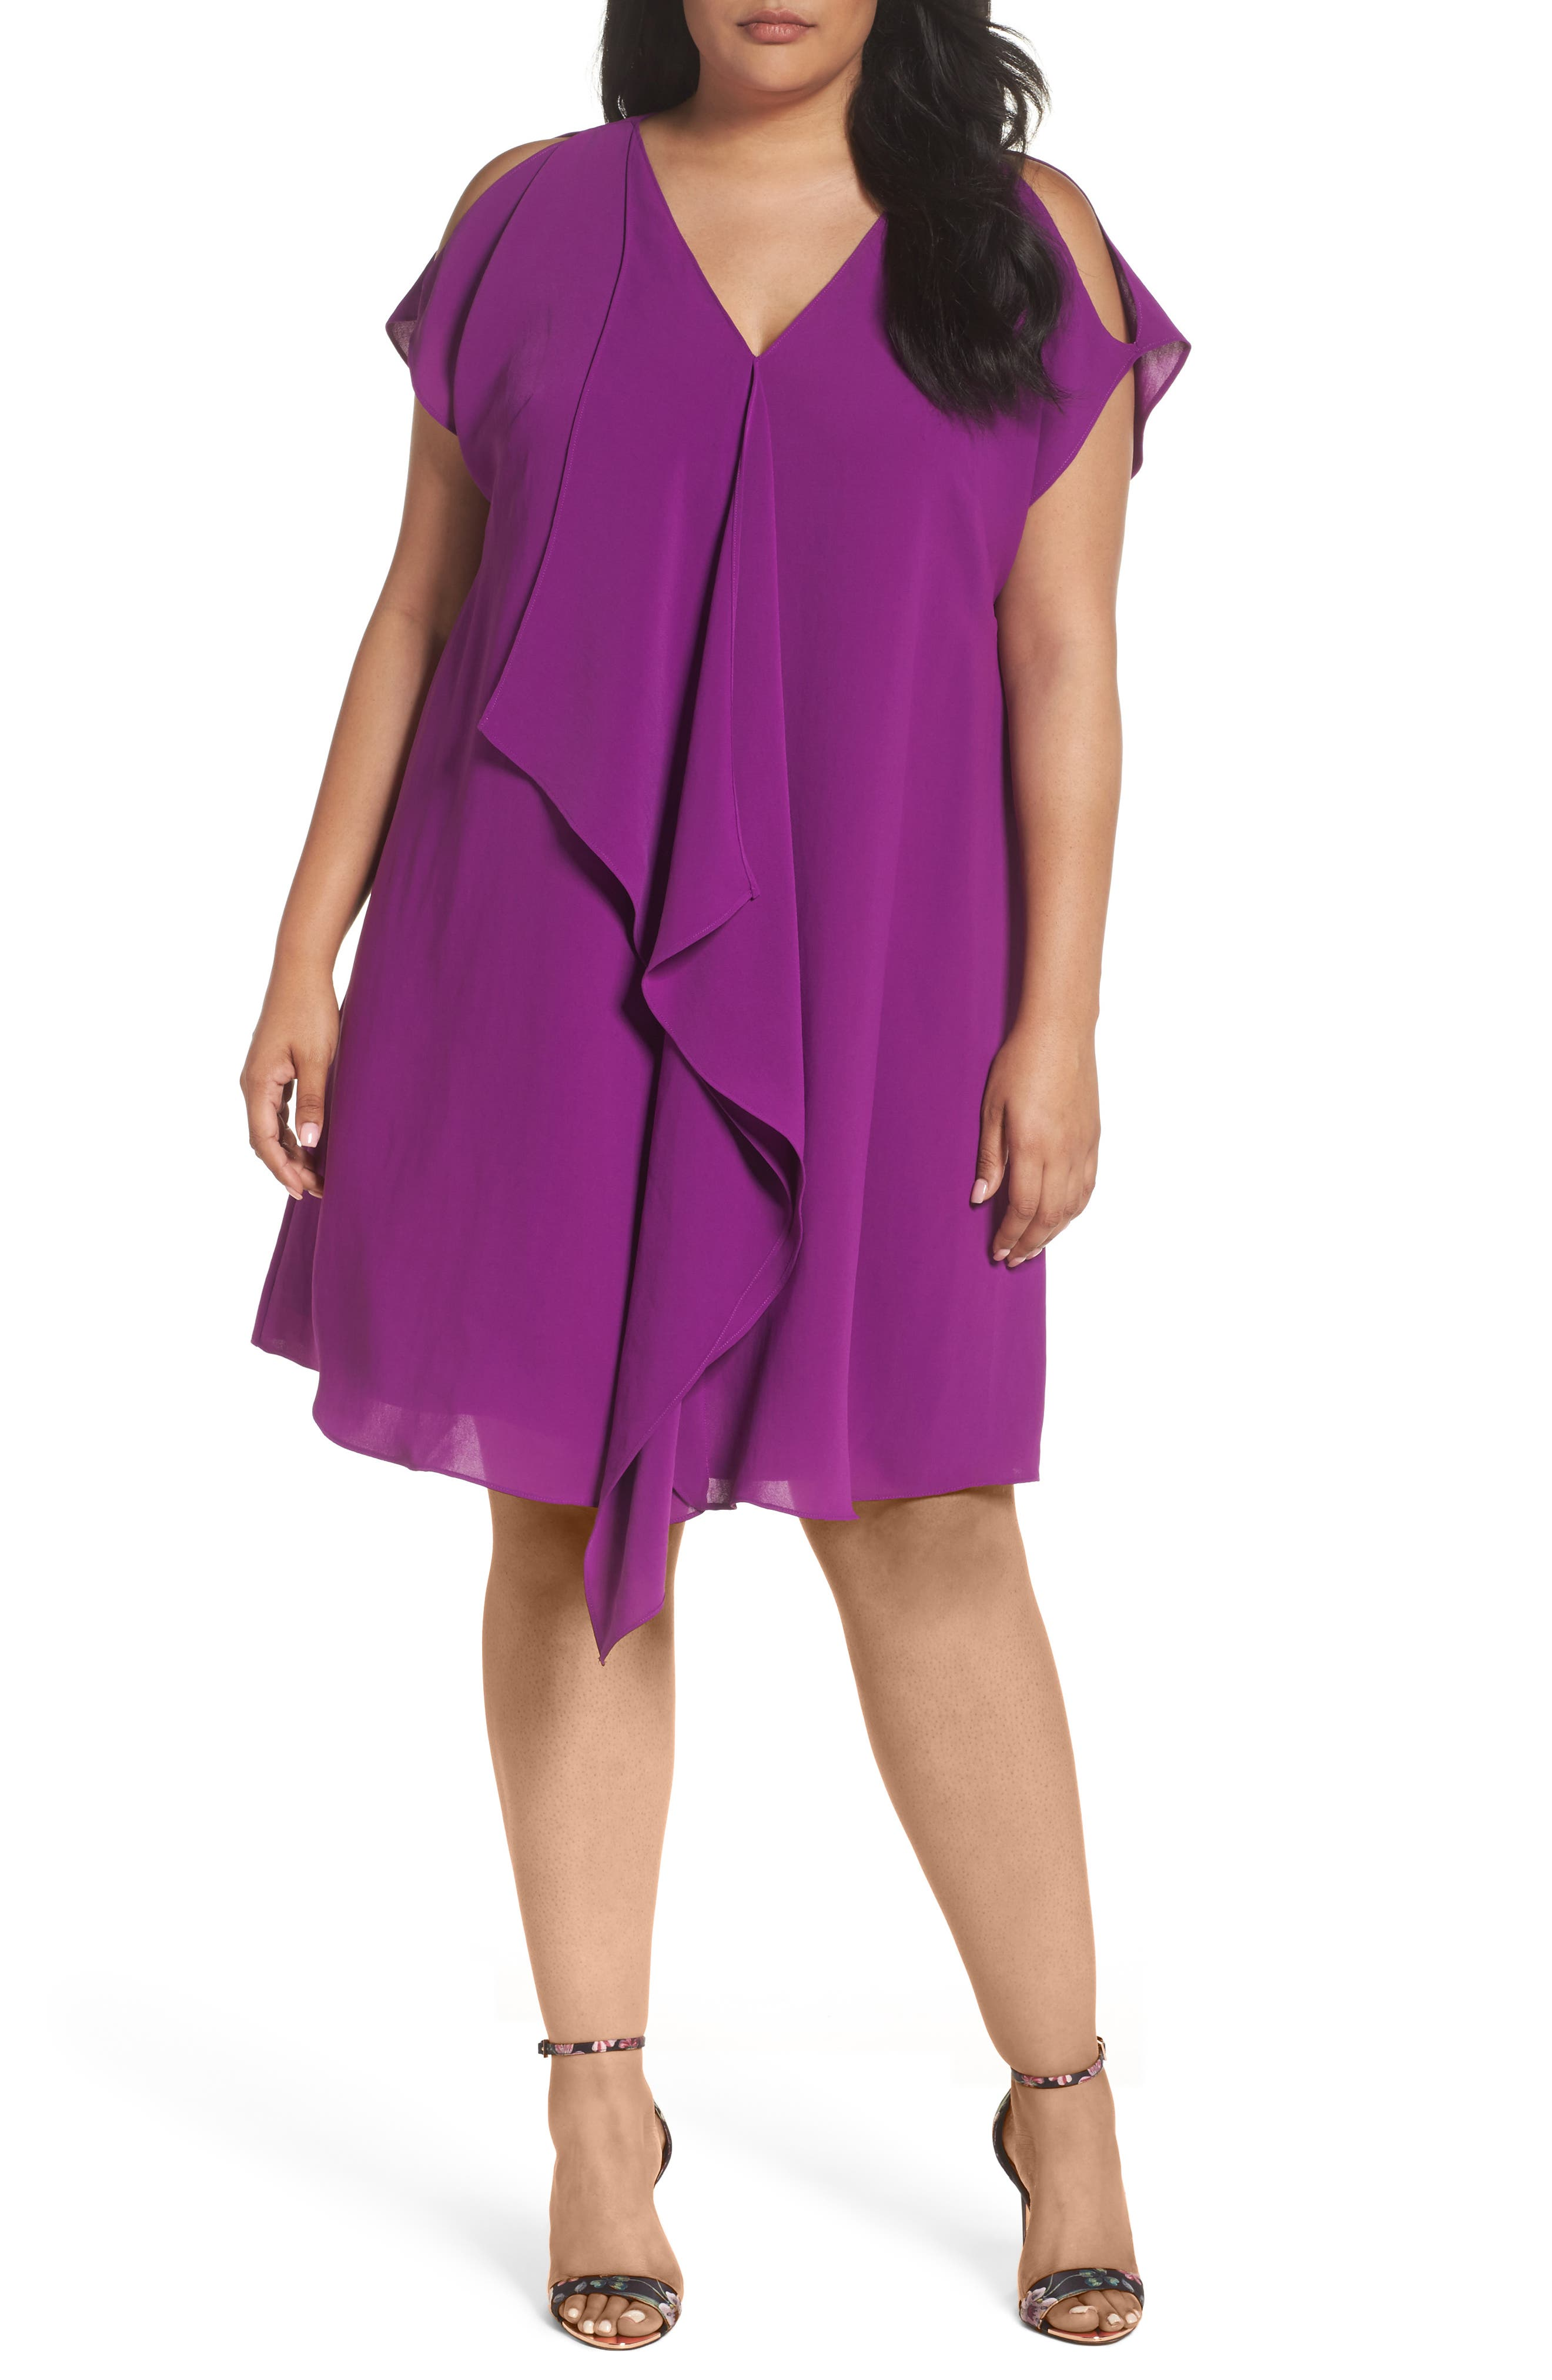 Adrianna Papell Asymmetrical Drape Shift Dress (Plus Size)